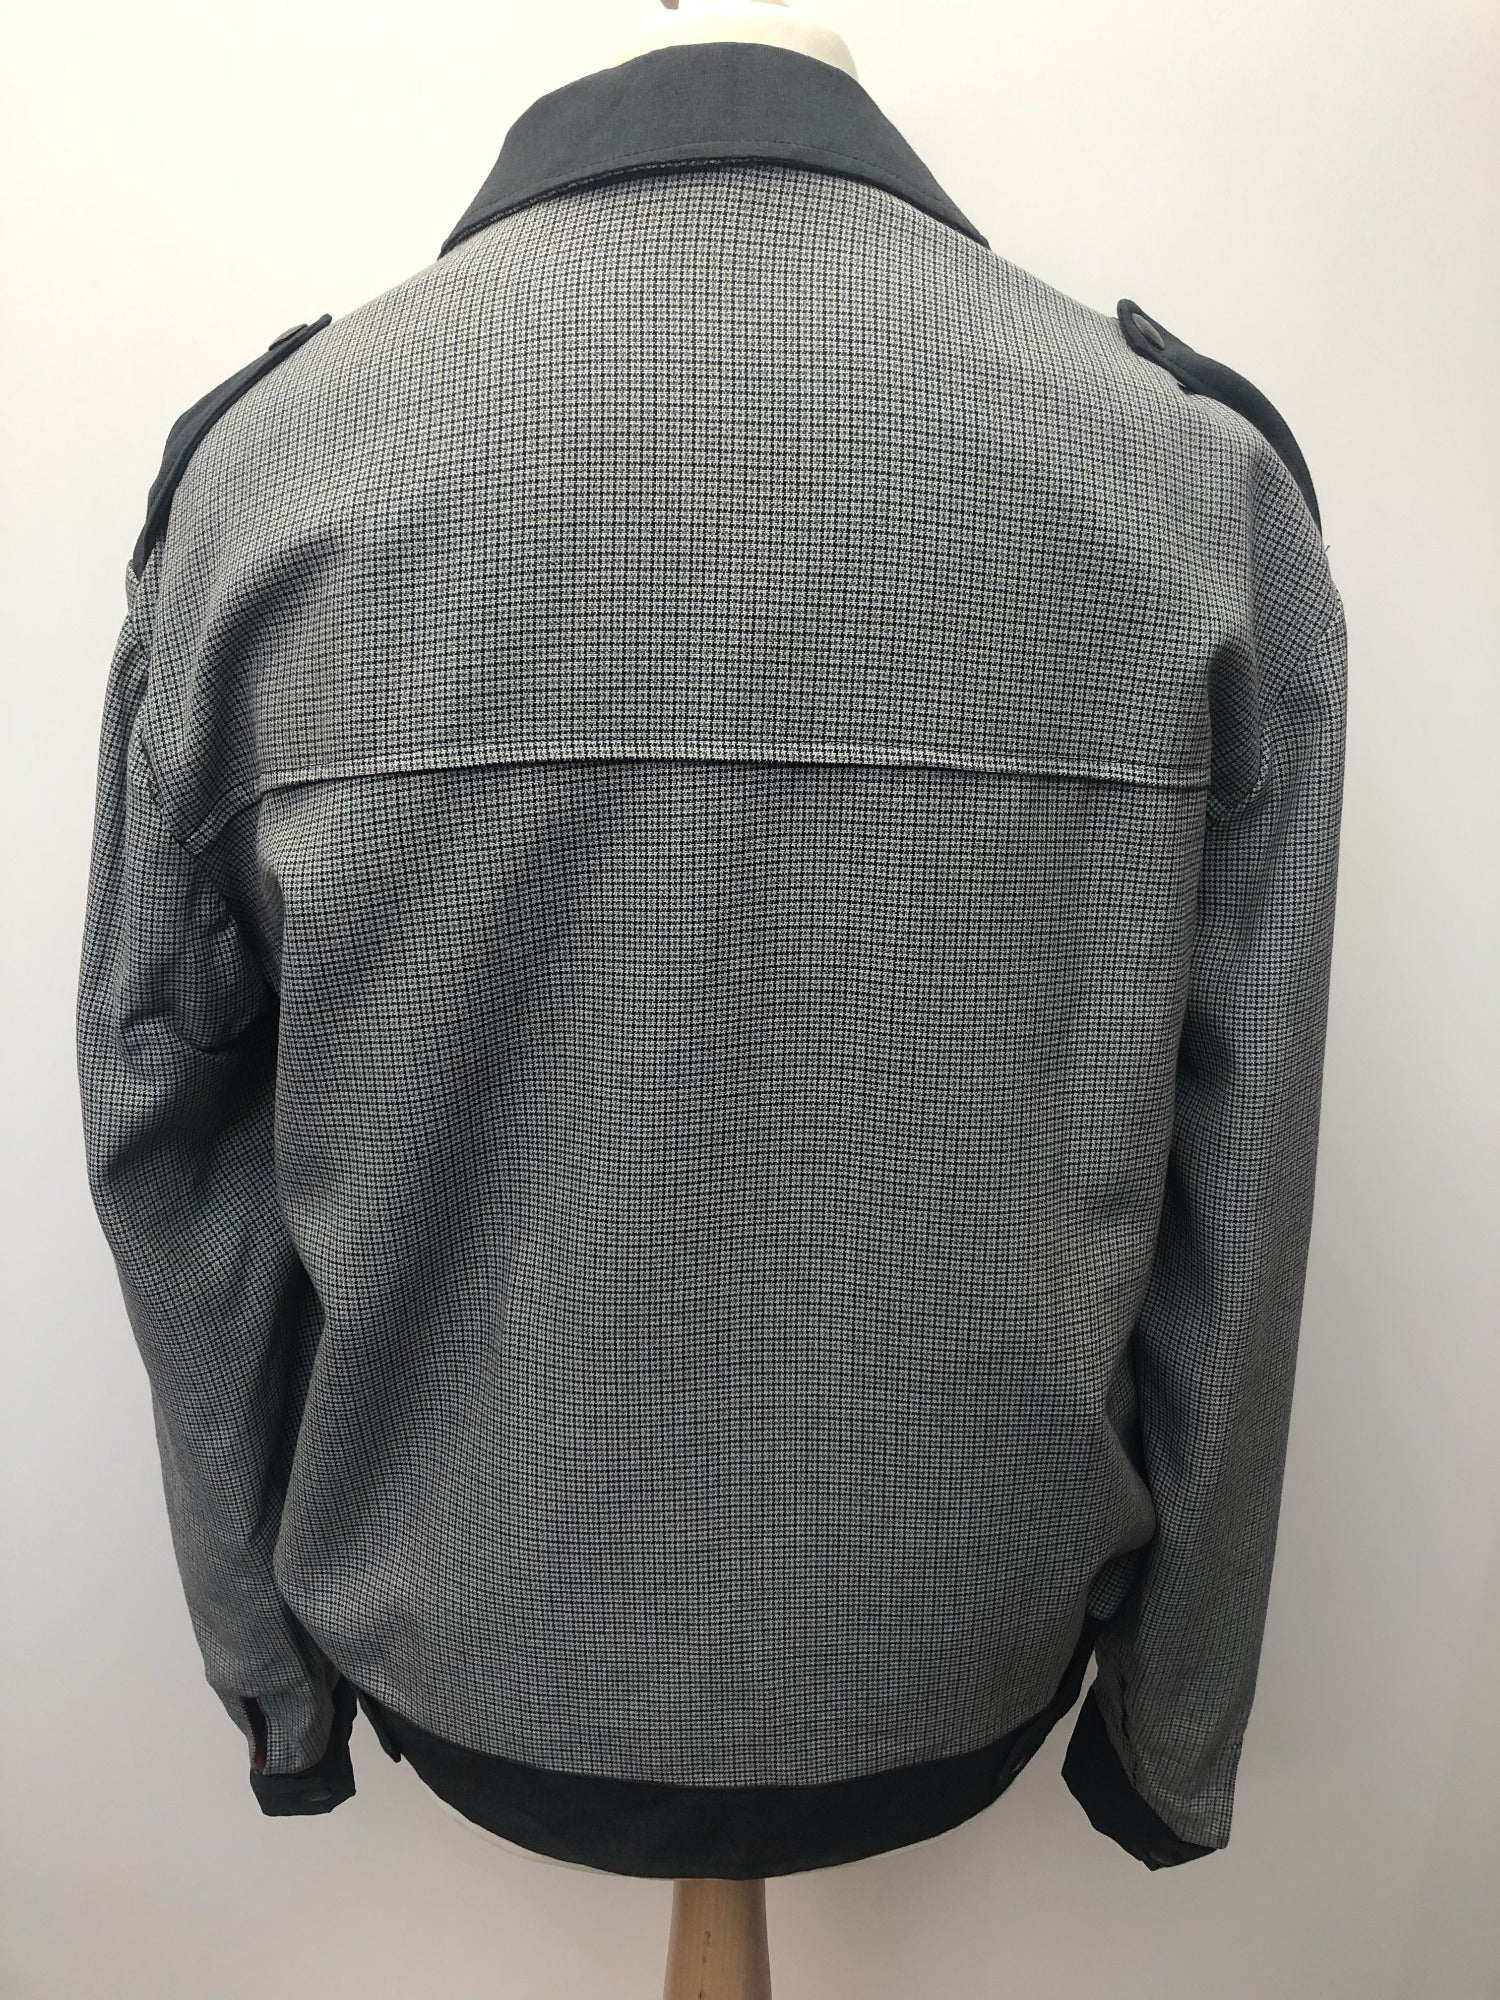 vintage  two tone  rockabilly  NOS  new old stock  mens  L  Jacket  Grey  gabardine  denim  check  50s  1950s urban village vintage